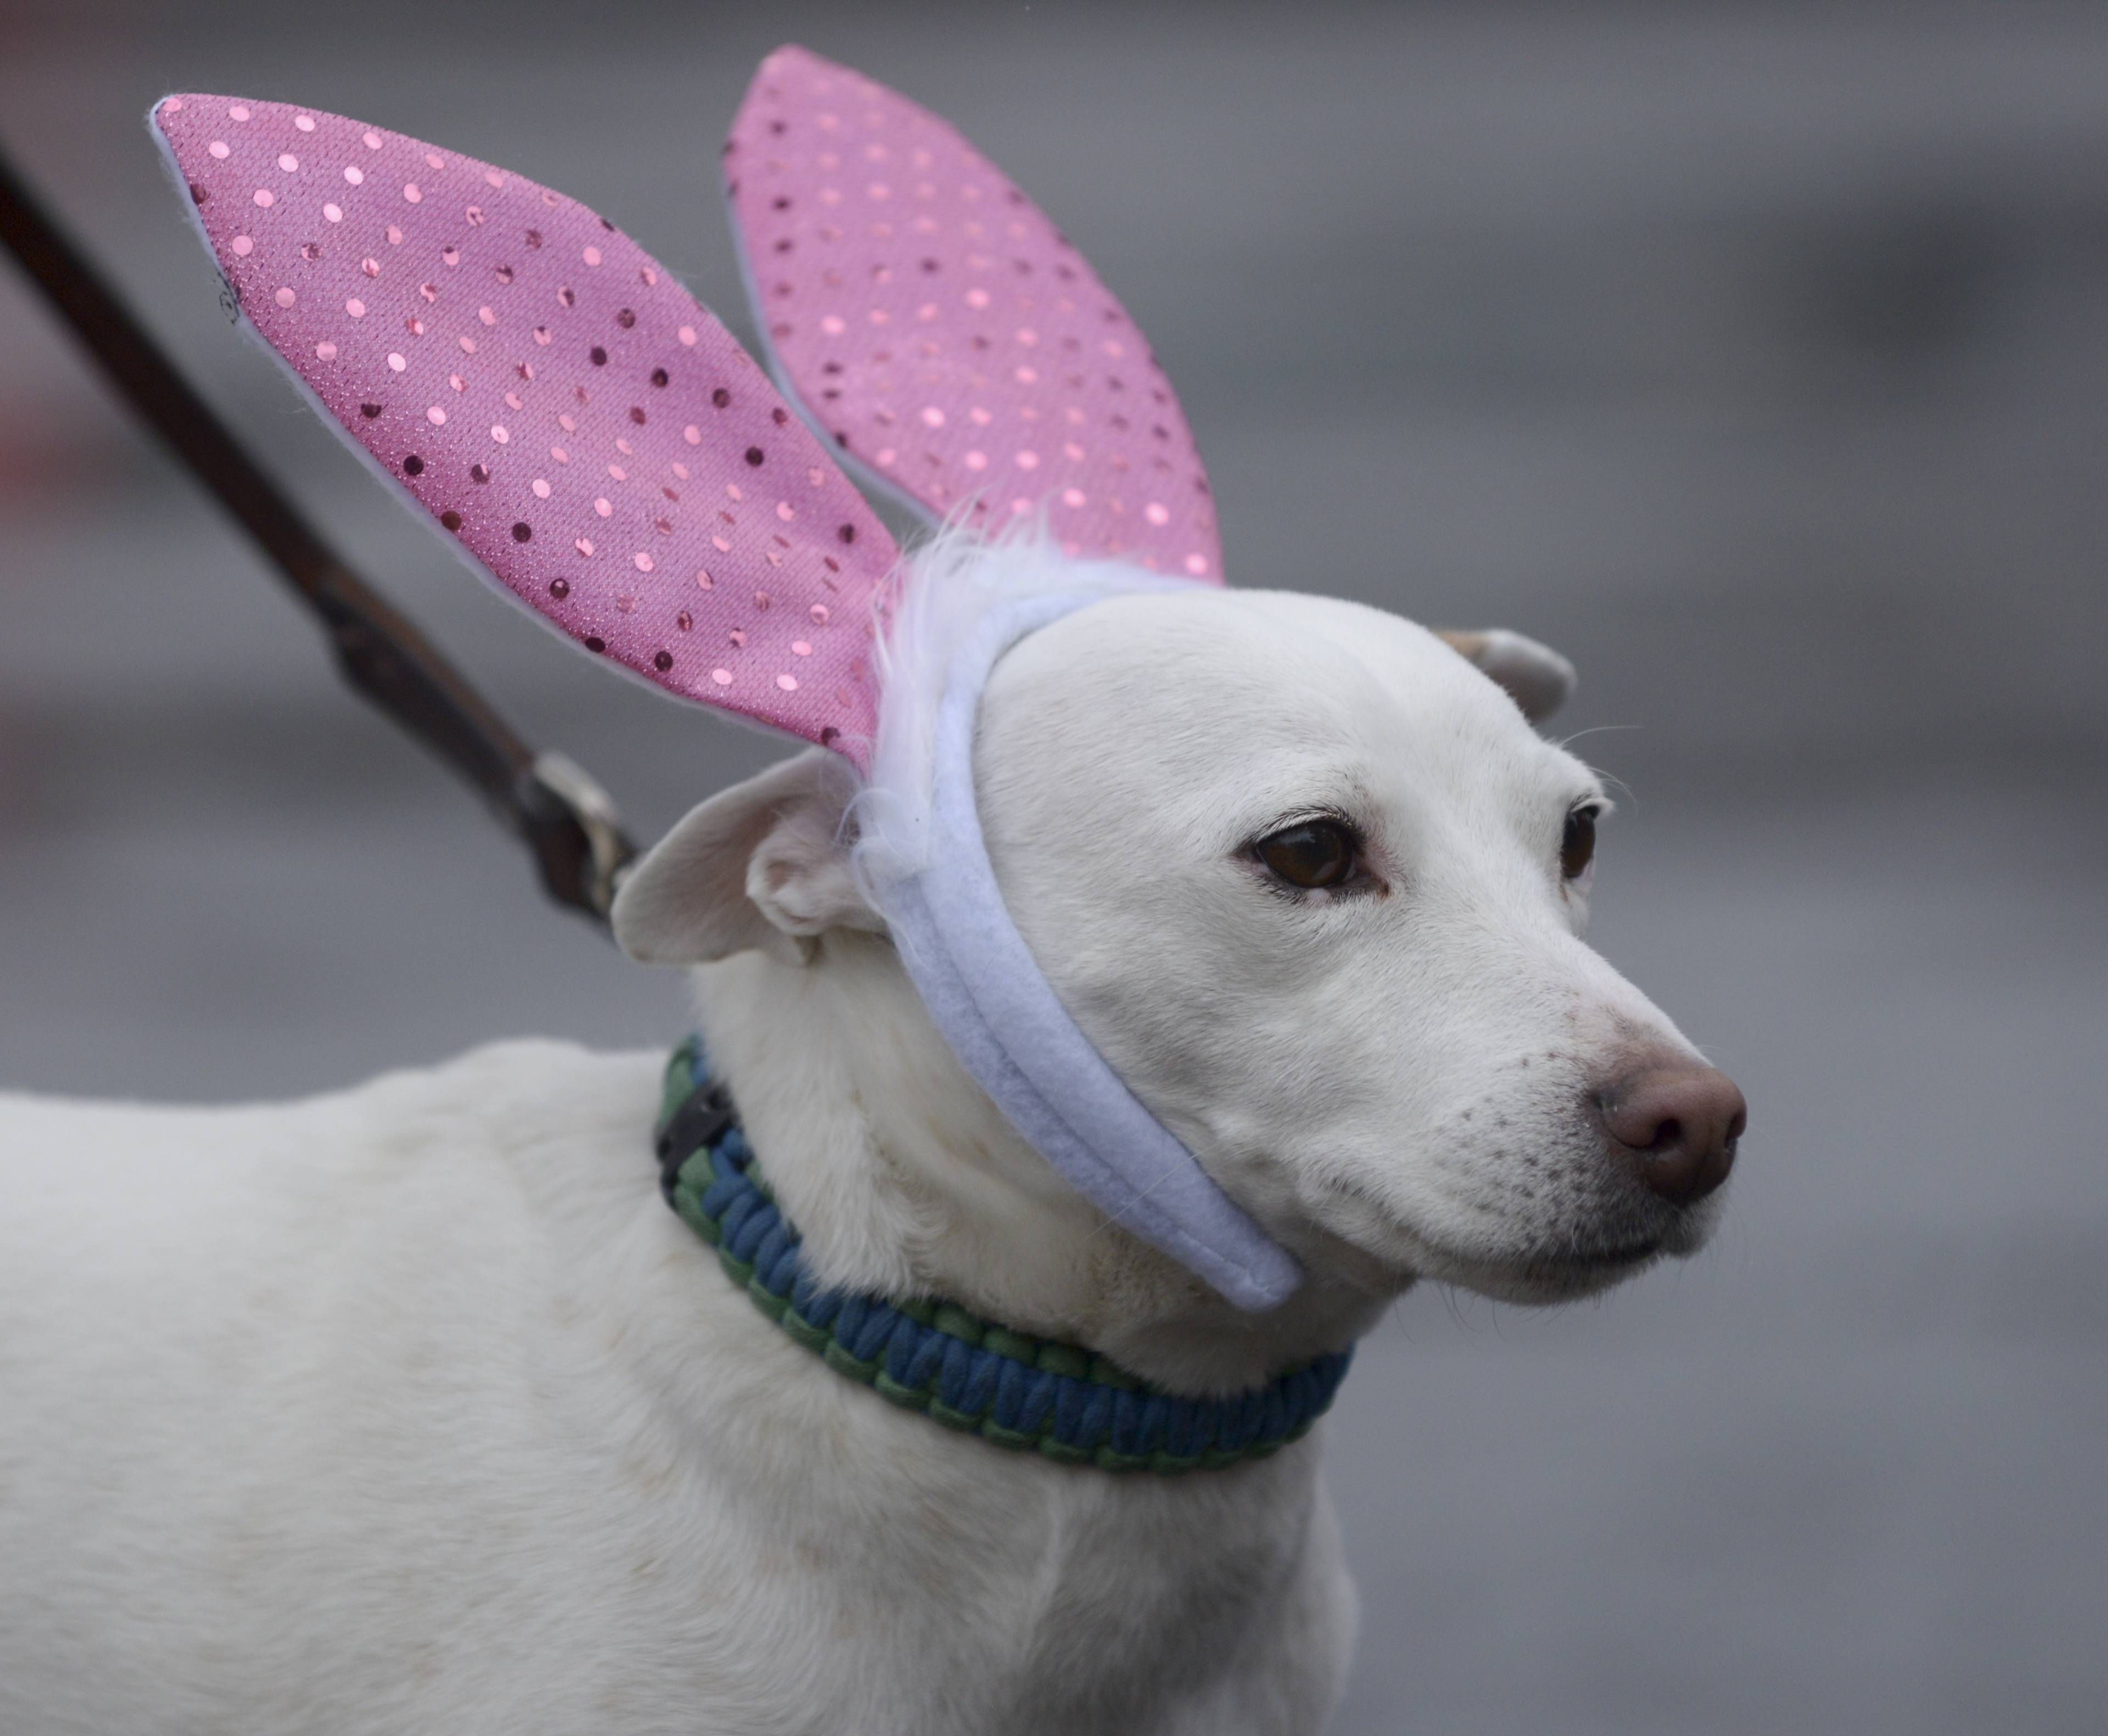 Jack Russell Terrier Charlie dons a pair of rabbit ears Sunday for the annual Doggie Egg Hunt and costume contest at White Oaks Dog Park in Wood Dale.